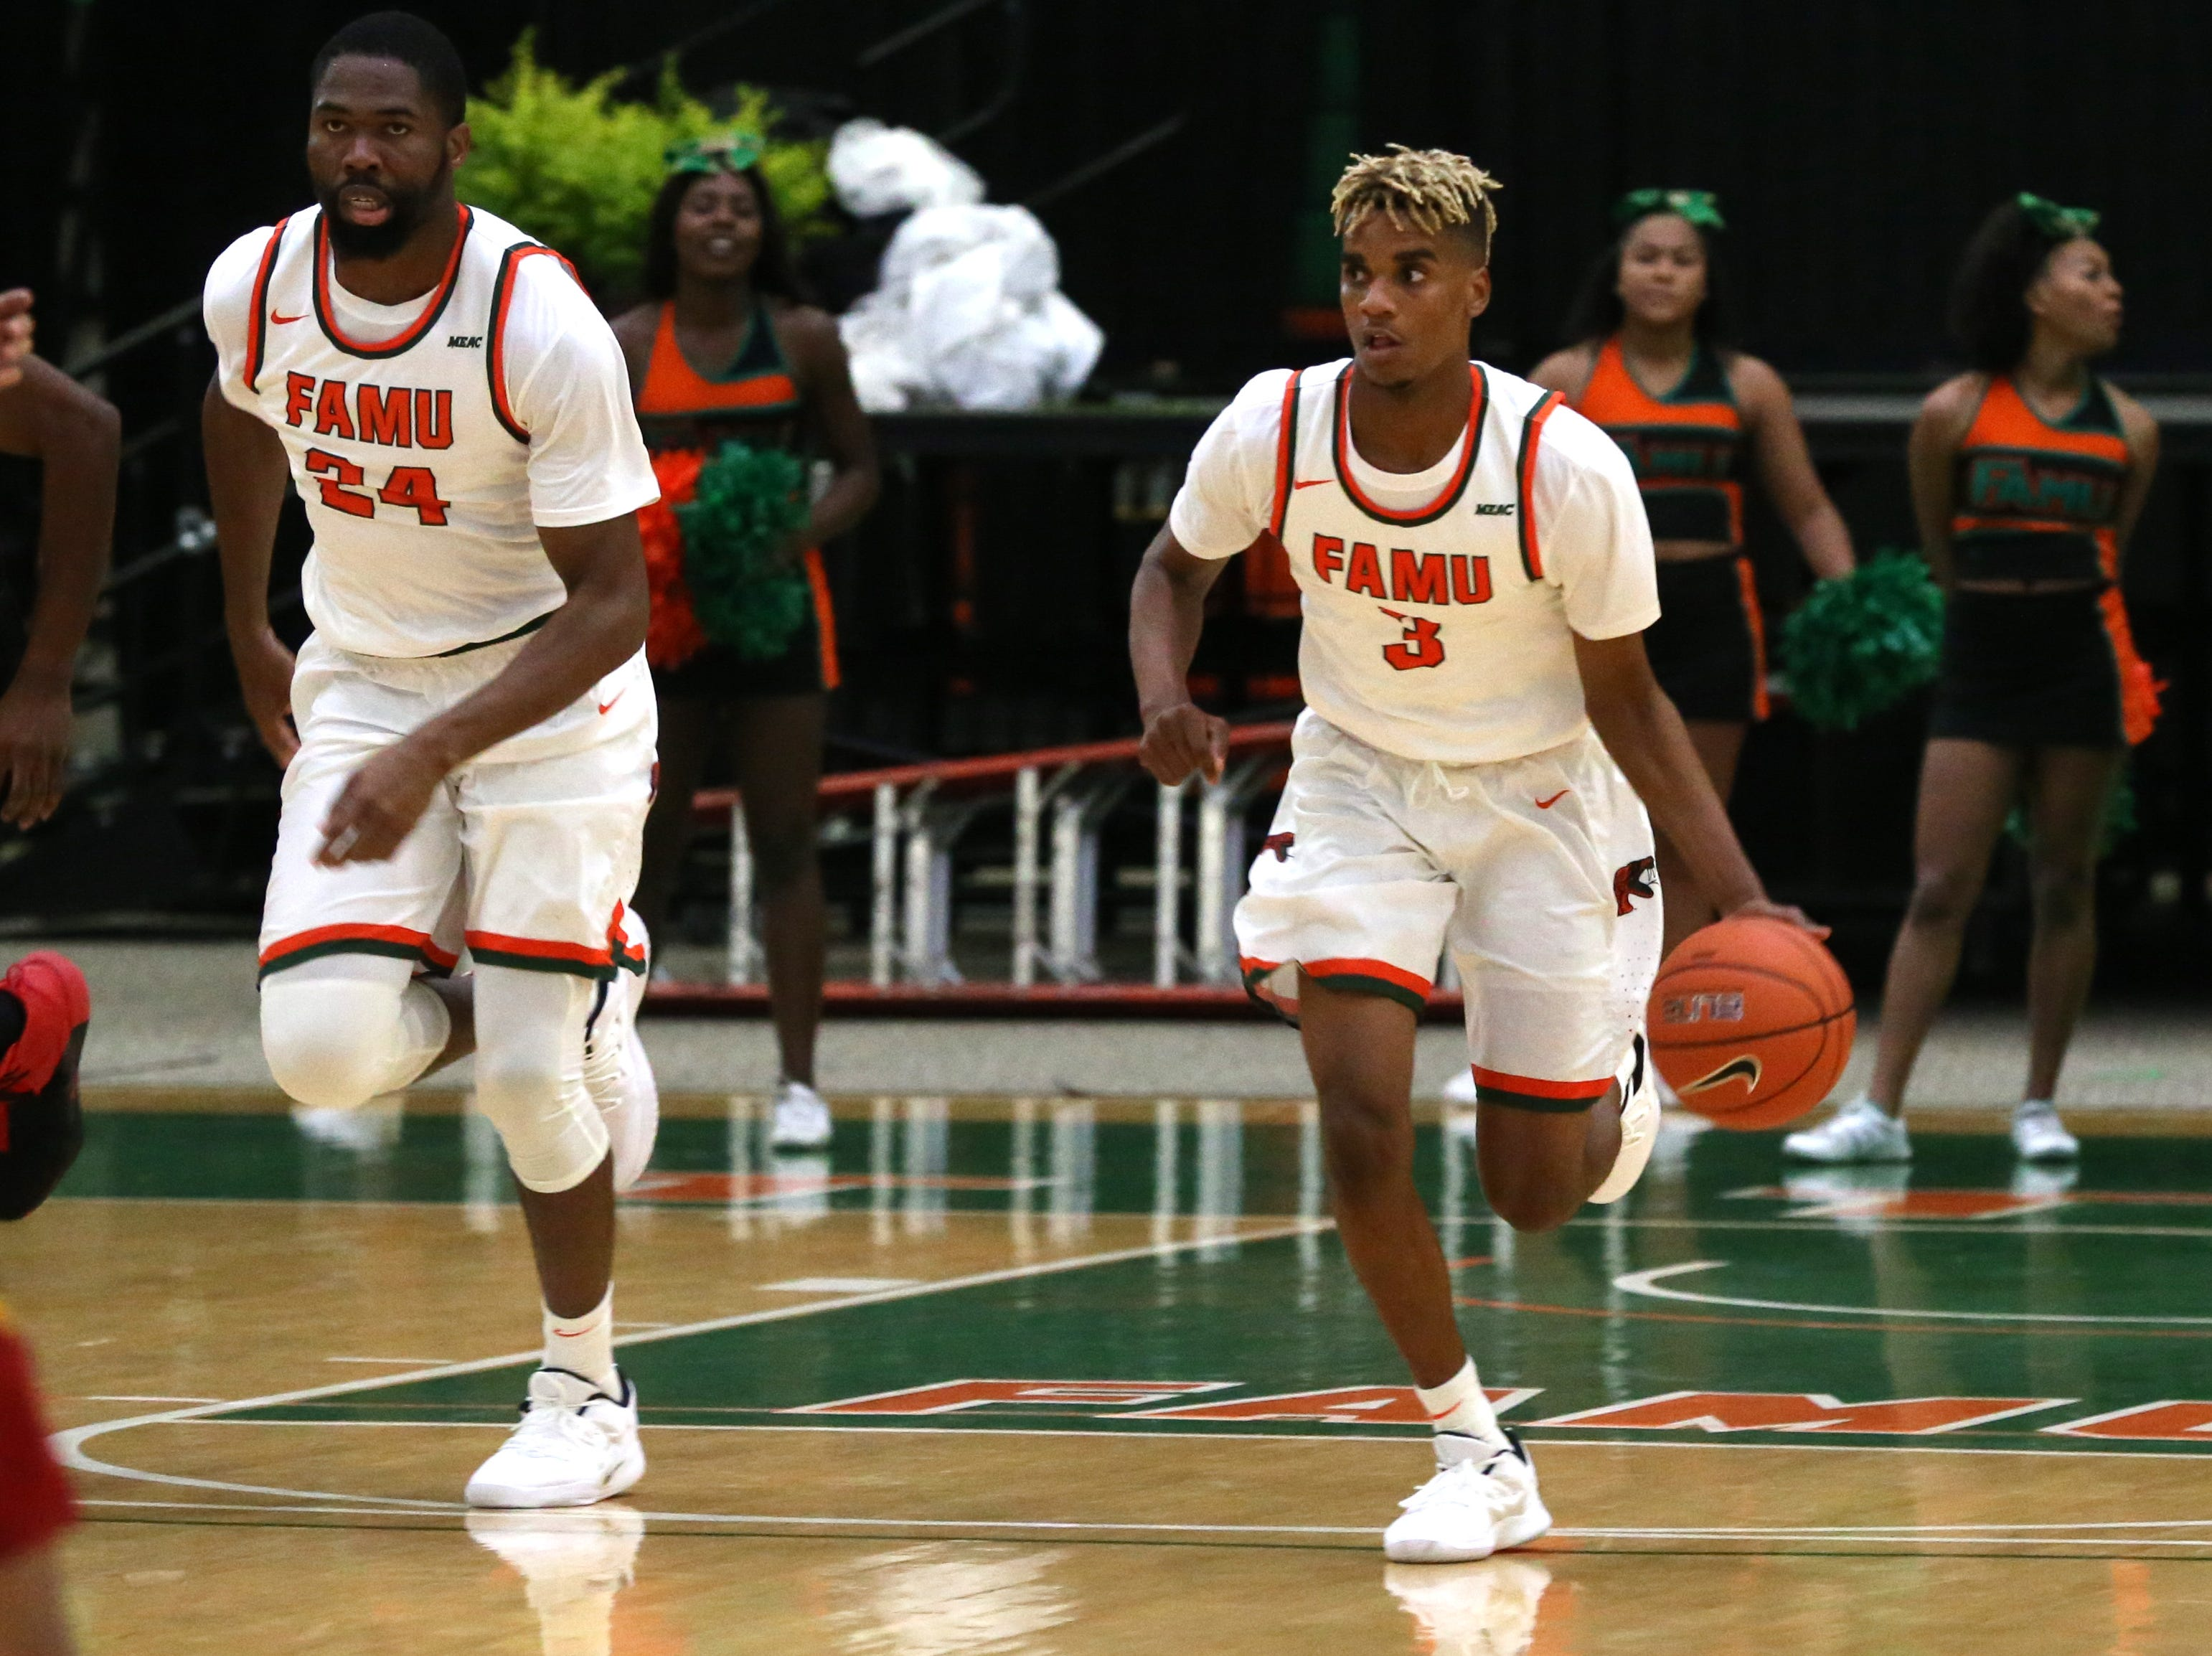 Florida A&M Rattlers guard MJ Randolph (3) drives down the court as the FAMU Rattlers take on the Tuskegee Golden Tigers in their first home game of the season in the Lawson Center, Saturday, Nov. 10, 2018.